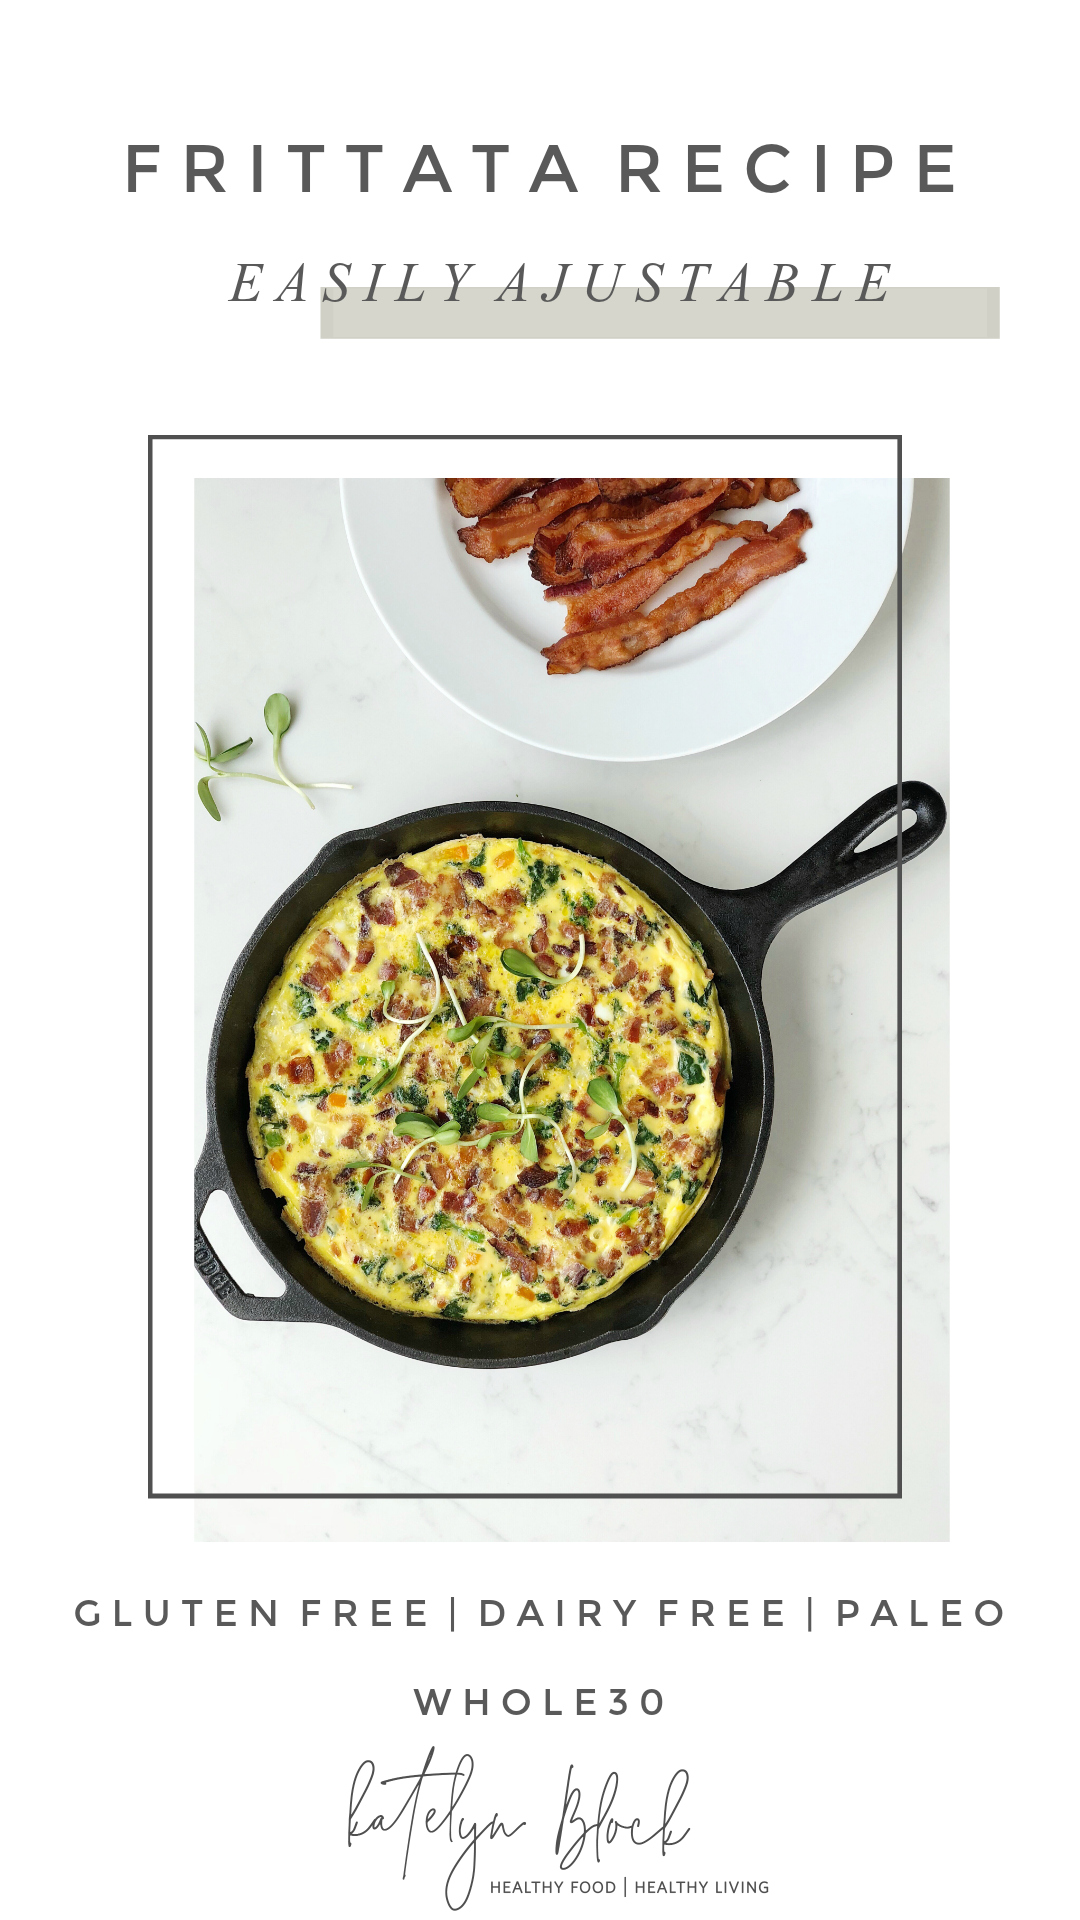 FRITTATA RECIPE WHOLE30 PALEO.jpg